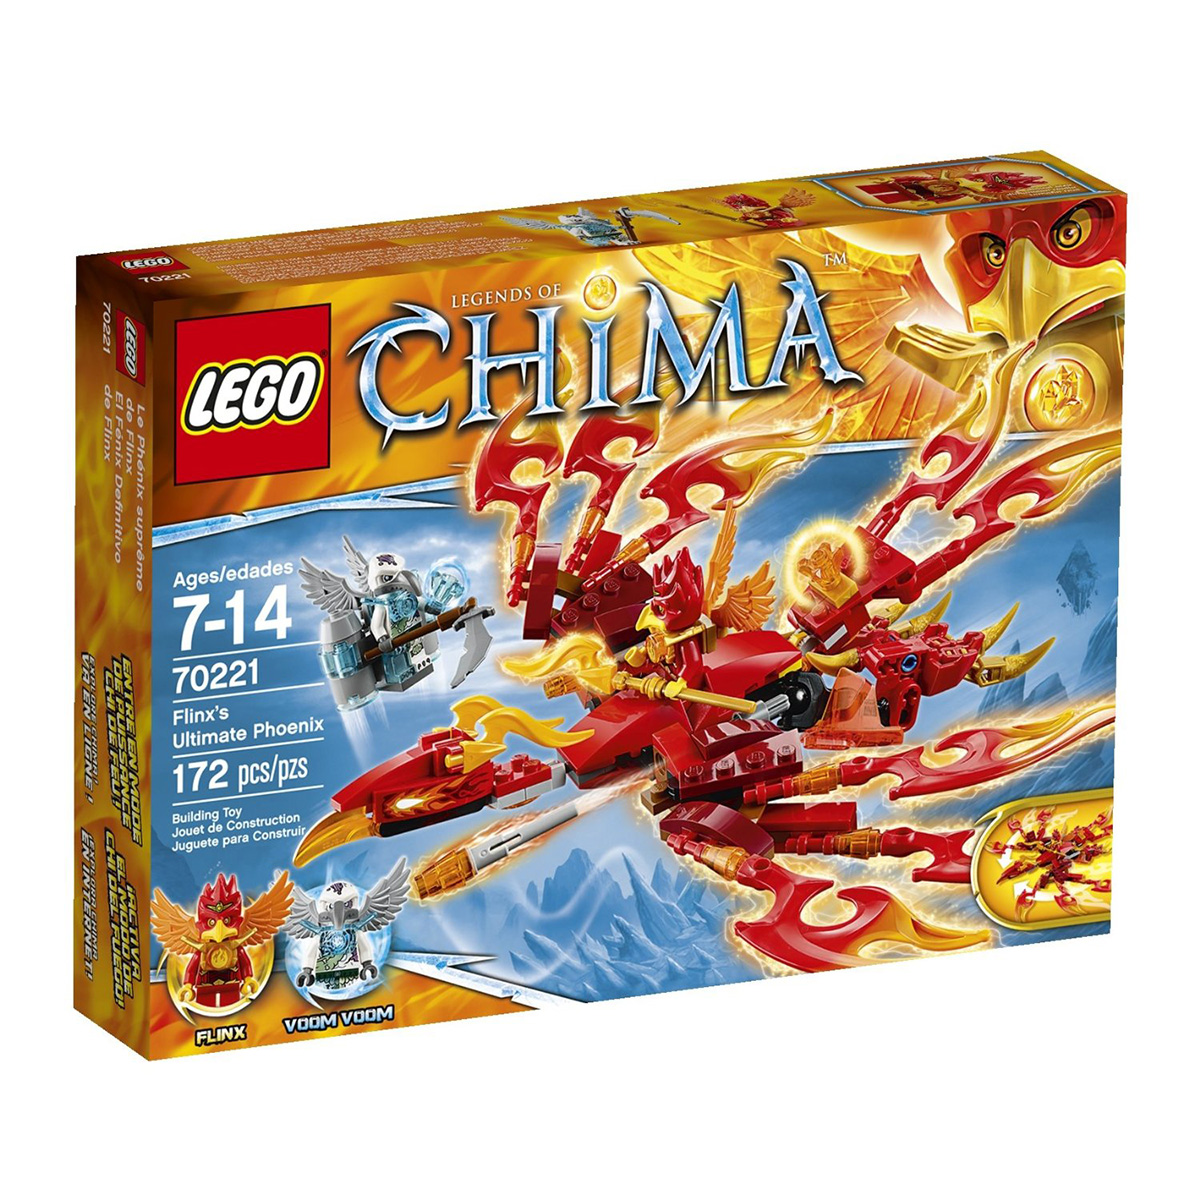 Do choi Lego 70221 – Co may phuong hoang cua Flinx